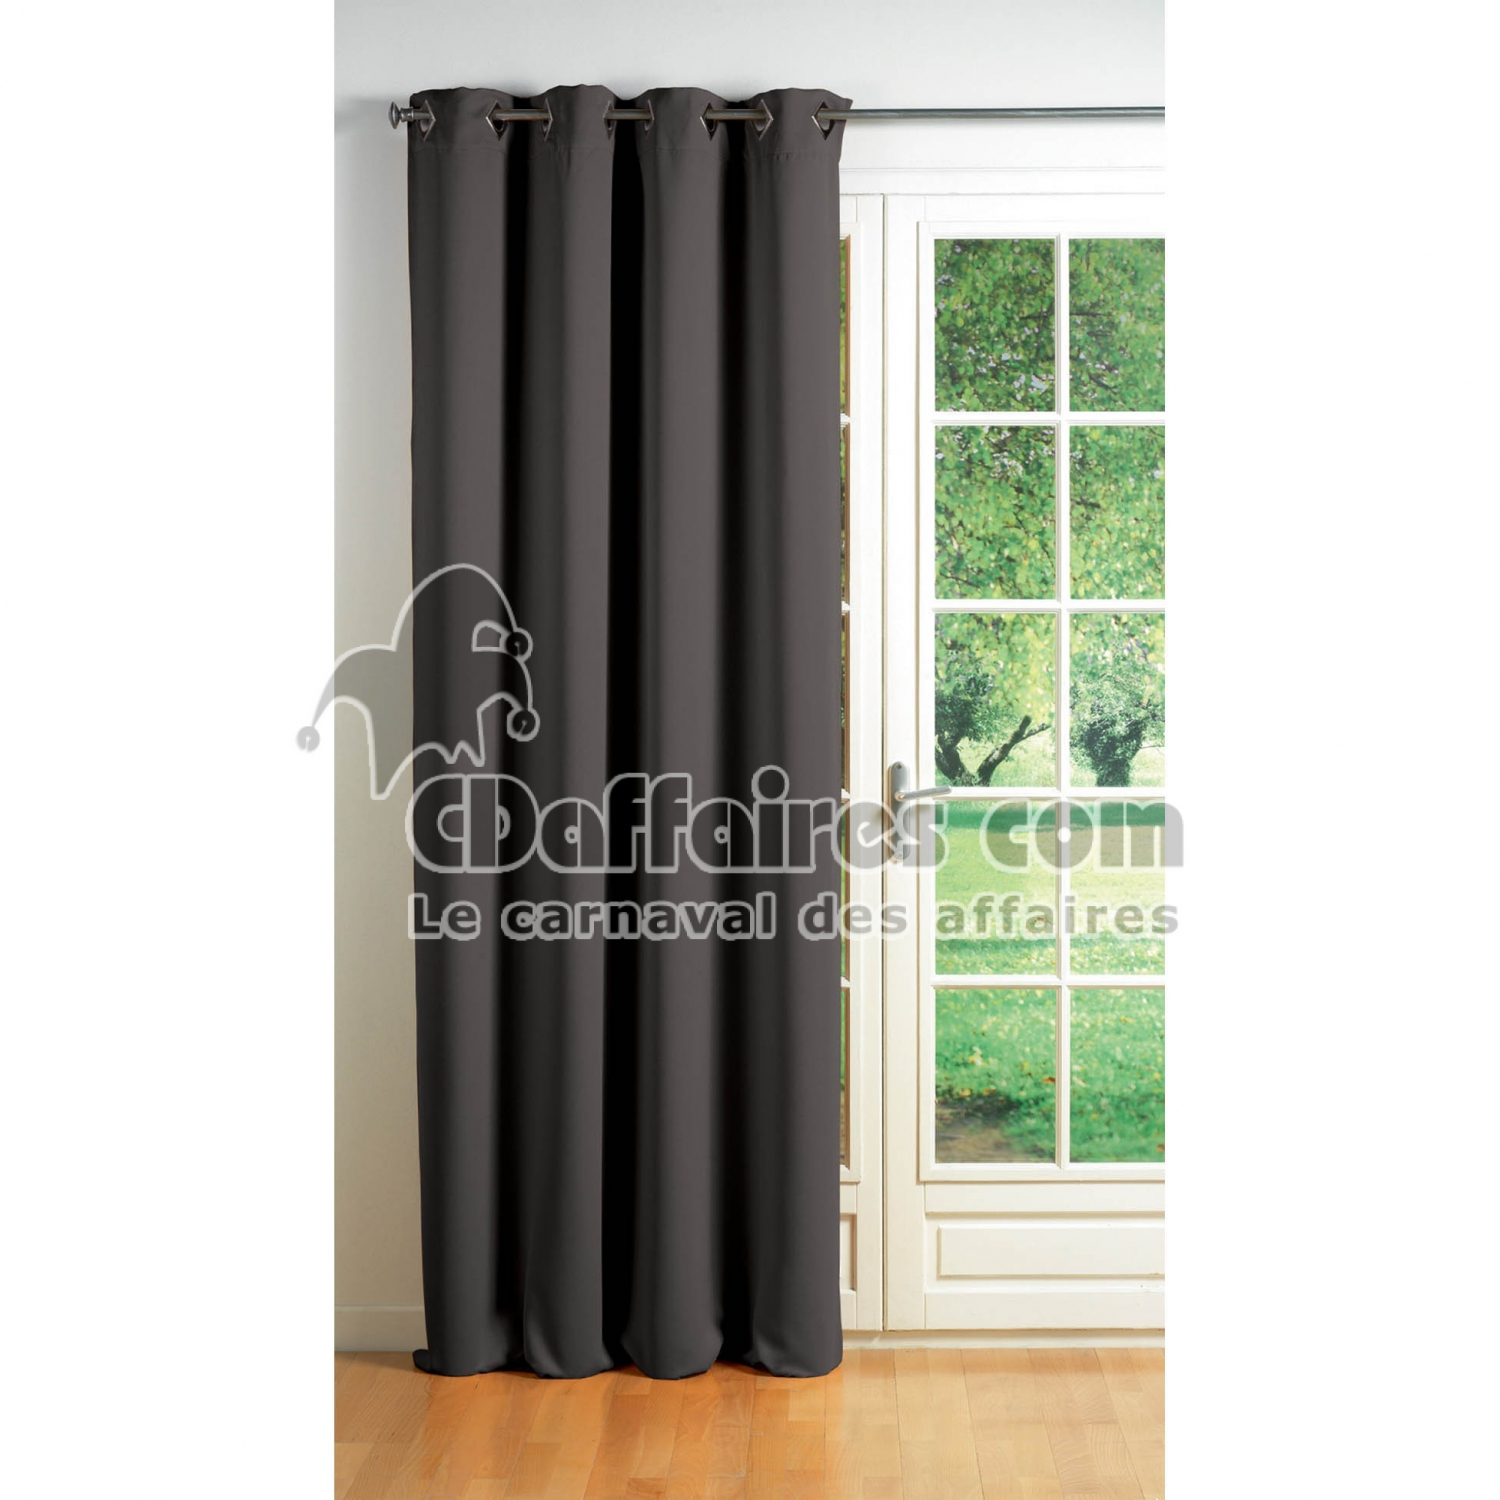 rideau isolant finest rideau isolant x cm tim lin with rideau isolant gallery of opaque. Black Bedroom Furniture Sets. Home Design Ideas